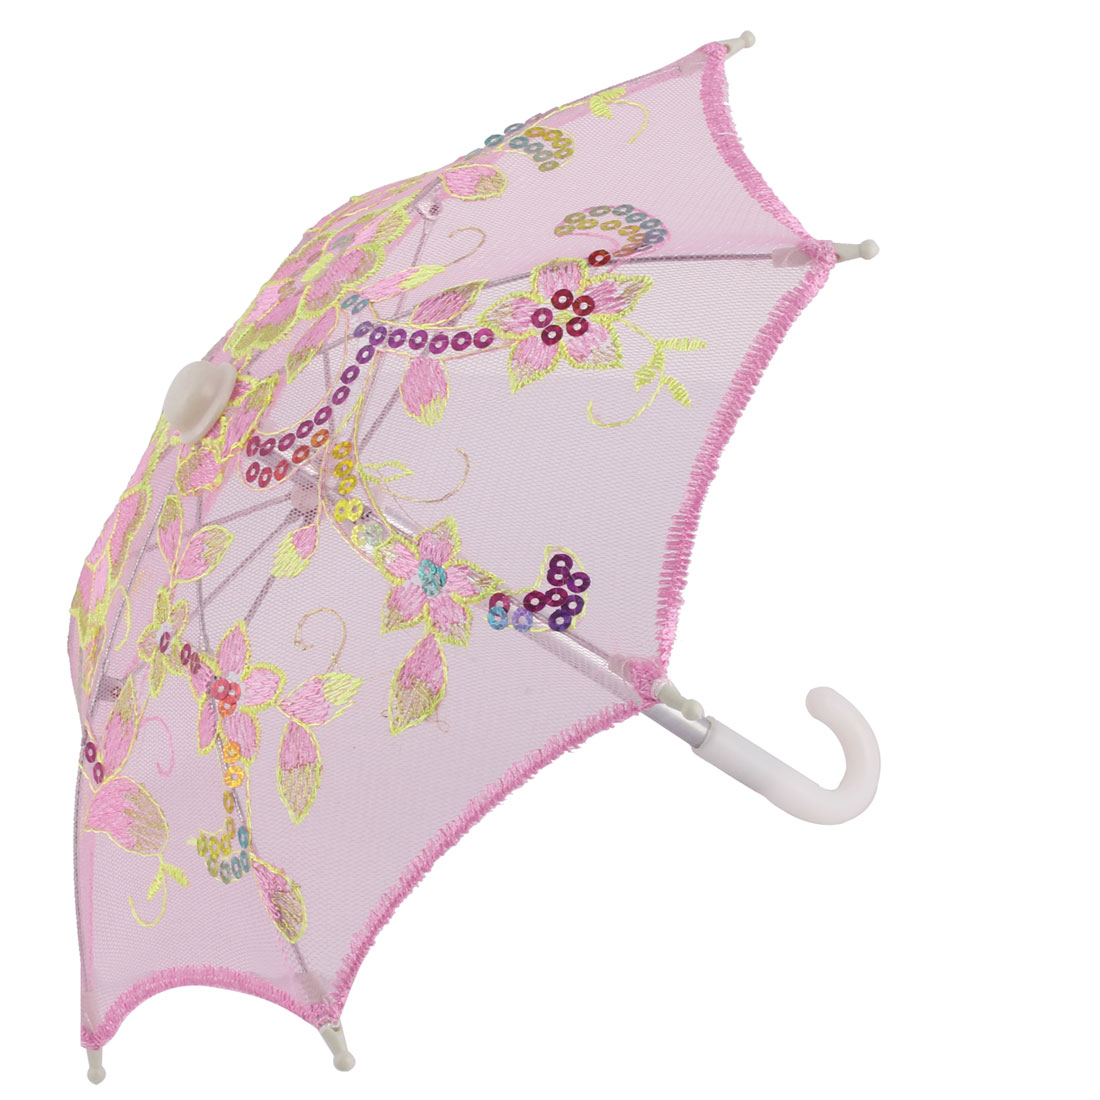 Dancing Lace Flower Pattern Embroidered Sequin Decor Craft Folding Mini Umbrella